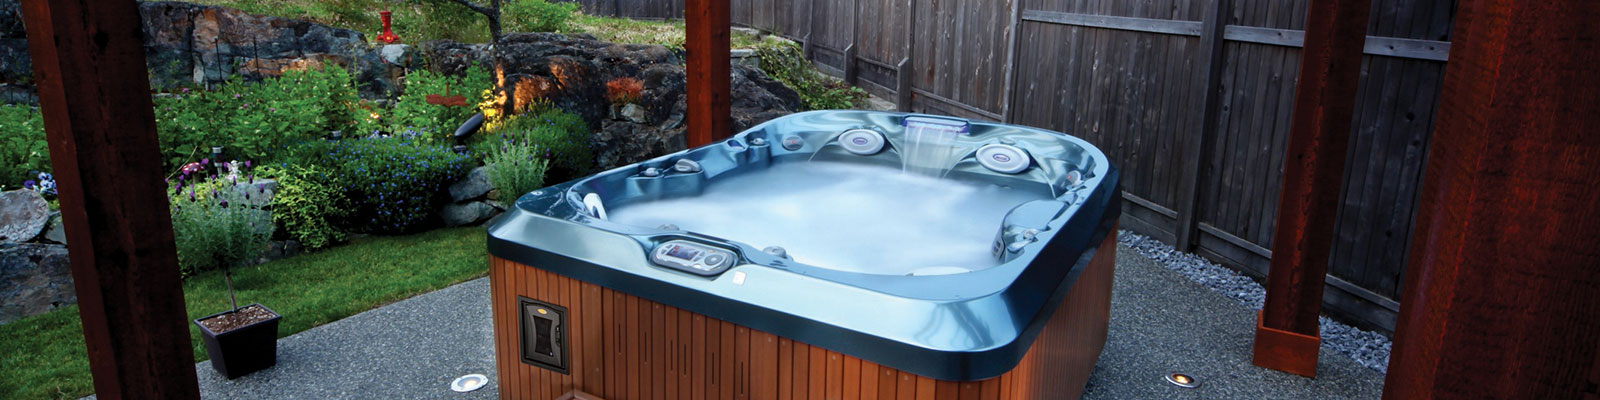 Spa Brands at Zagers of West Michigan include Jacuzzi, Dimension One and Mira Hot Tubs